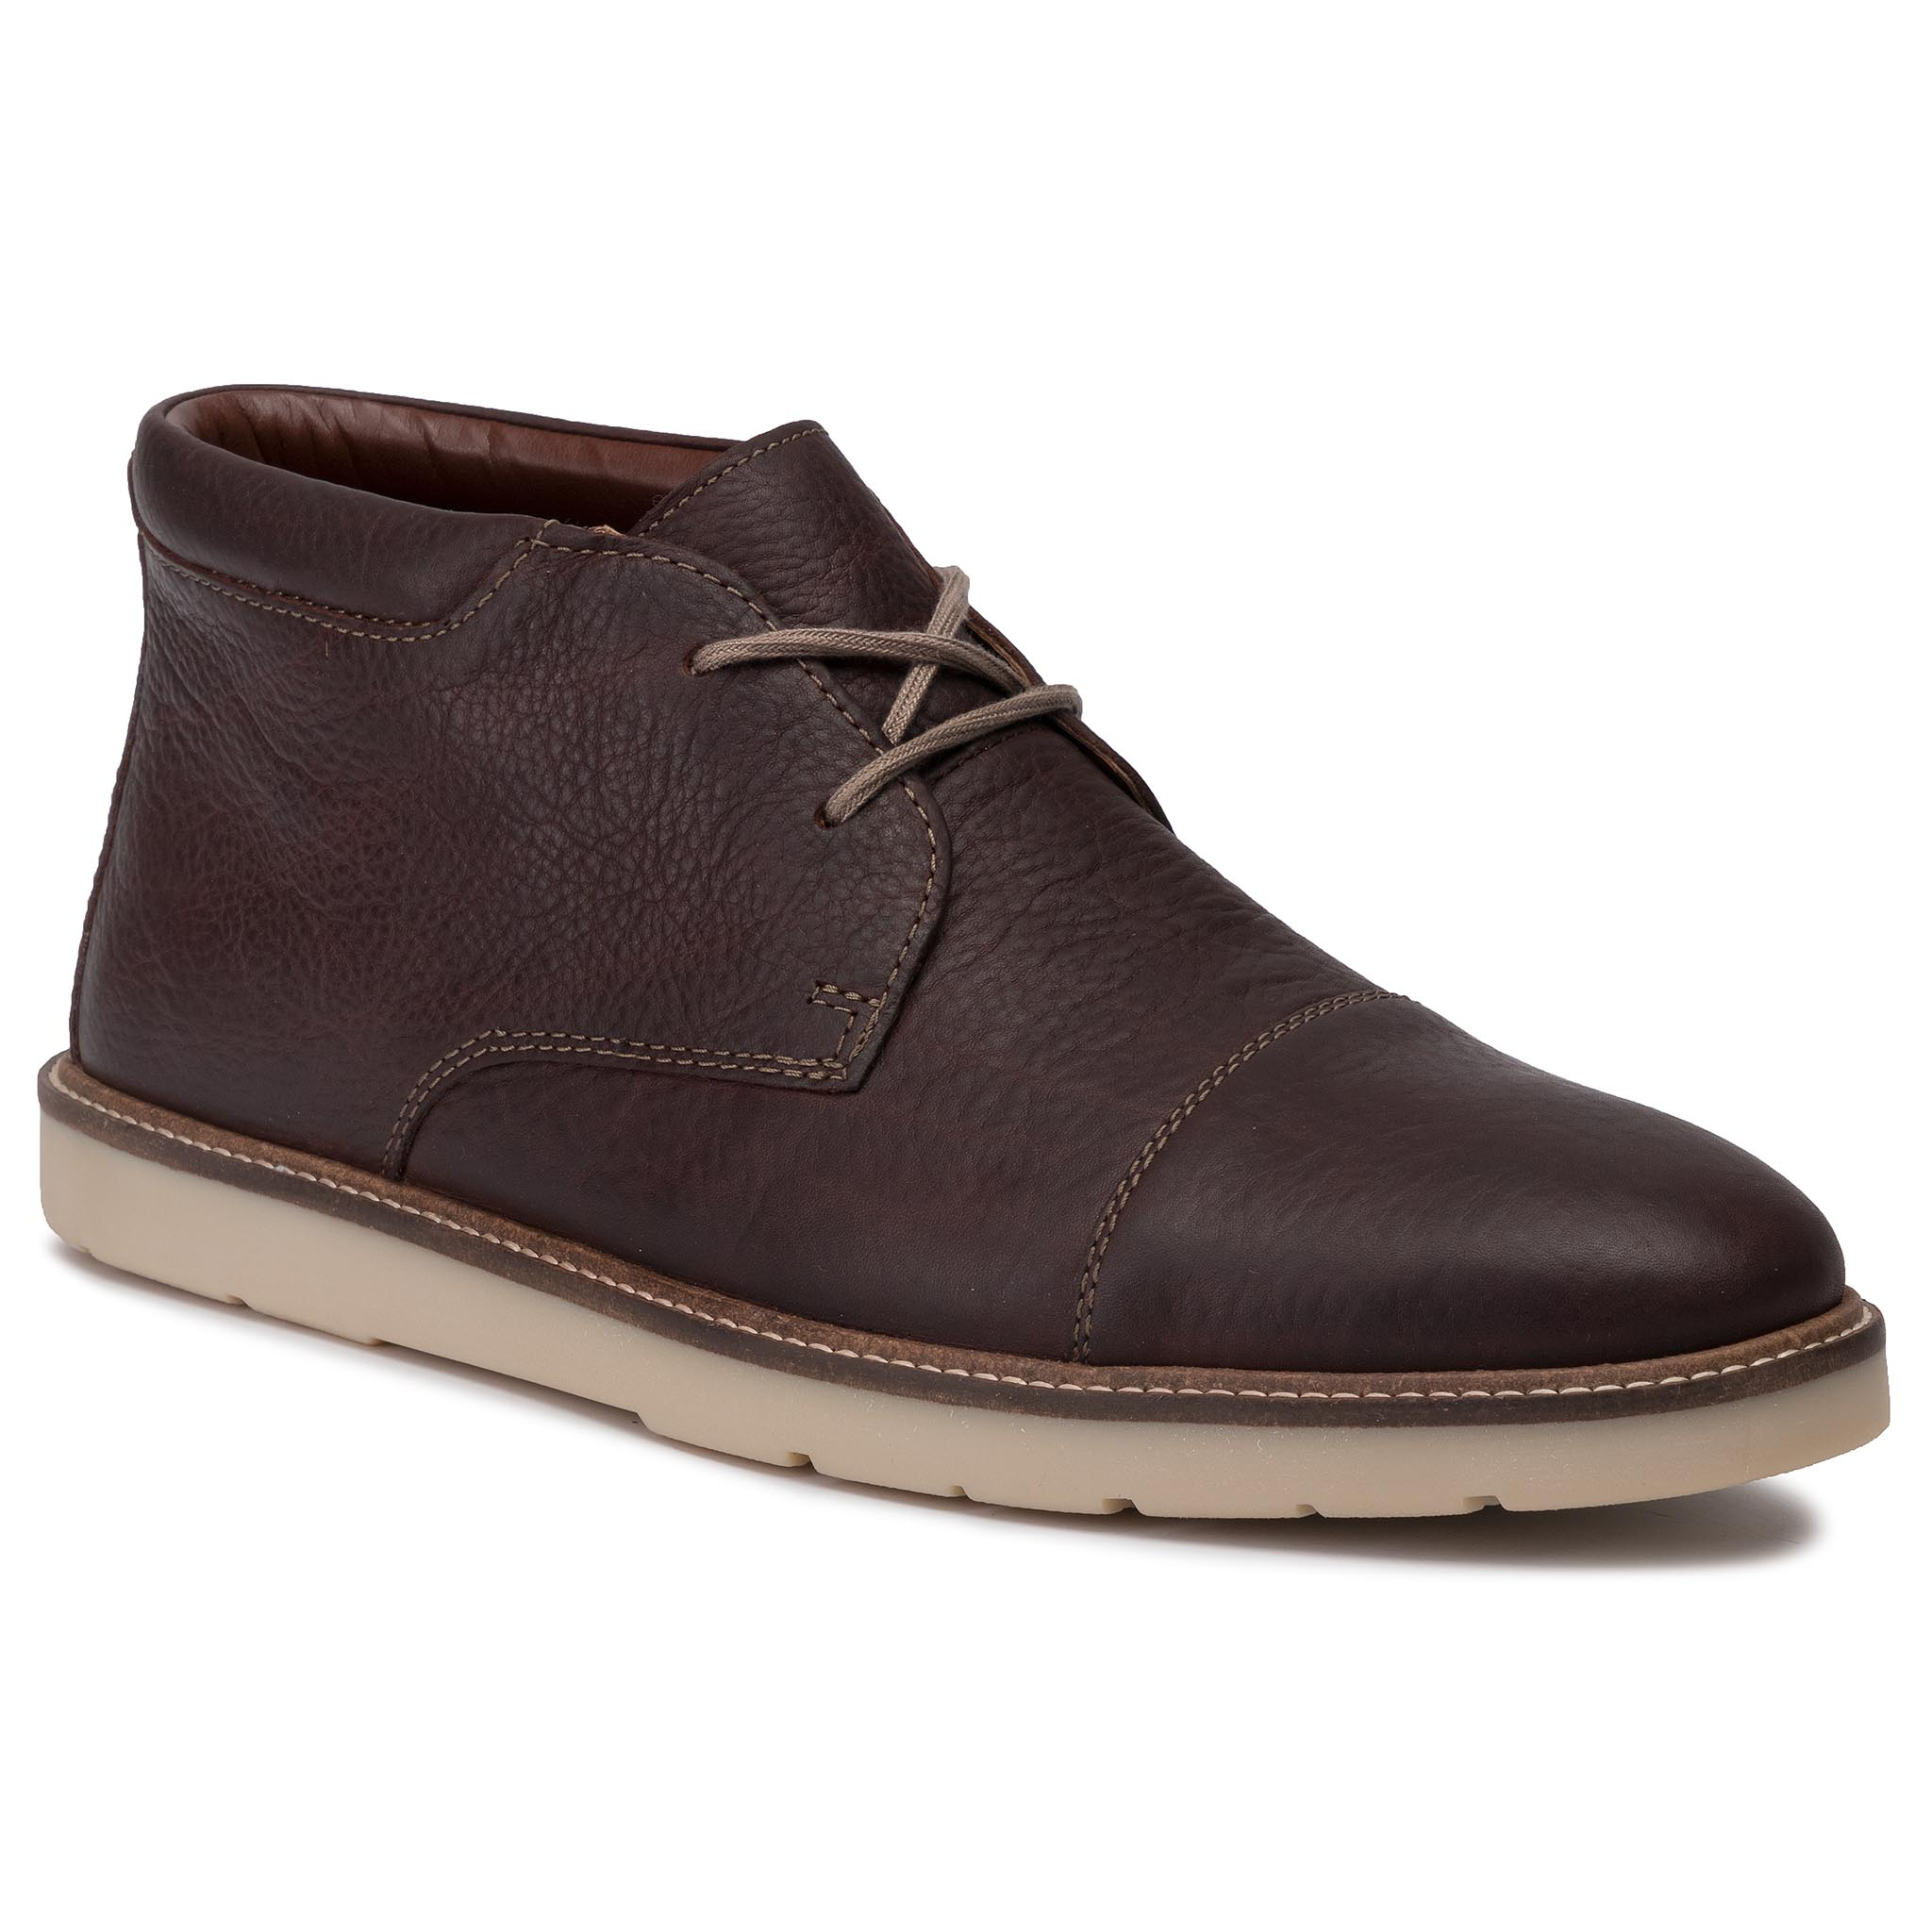 Ghete Clarks - Grandin Top 261463907 Dark Brown Tumbled imagine